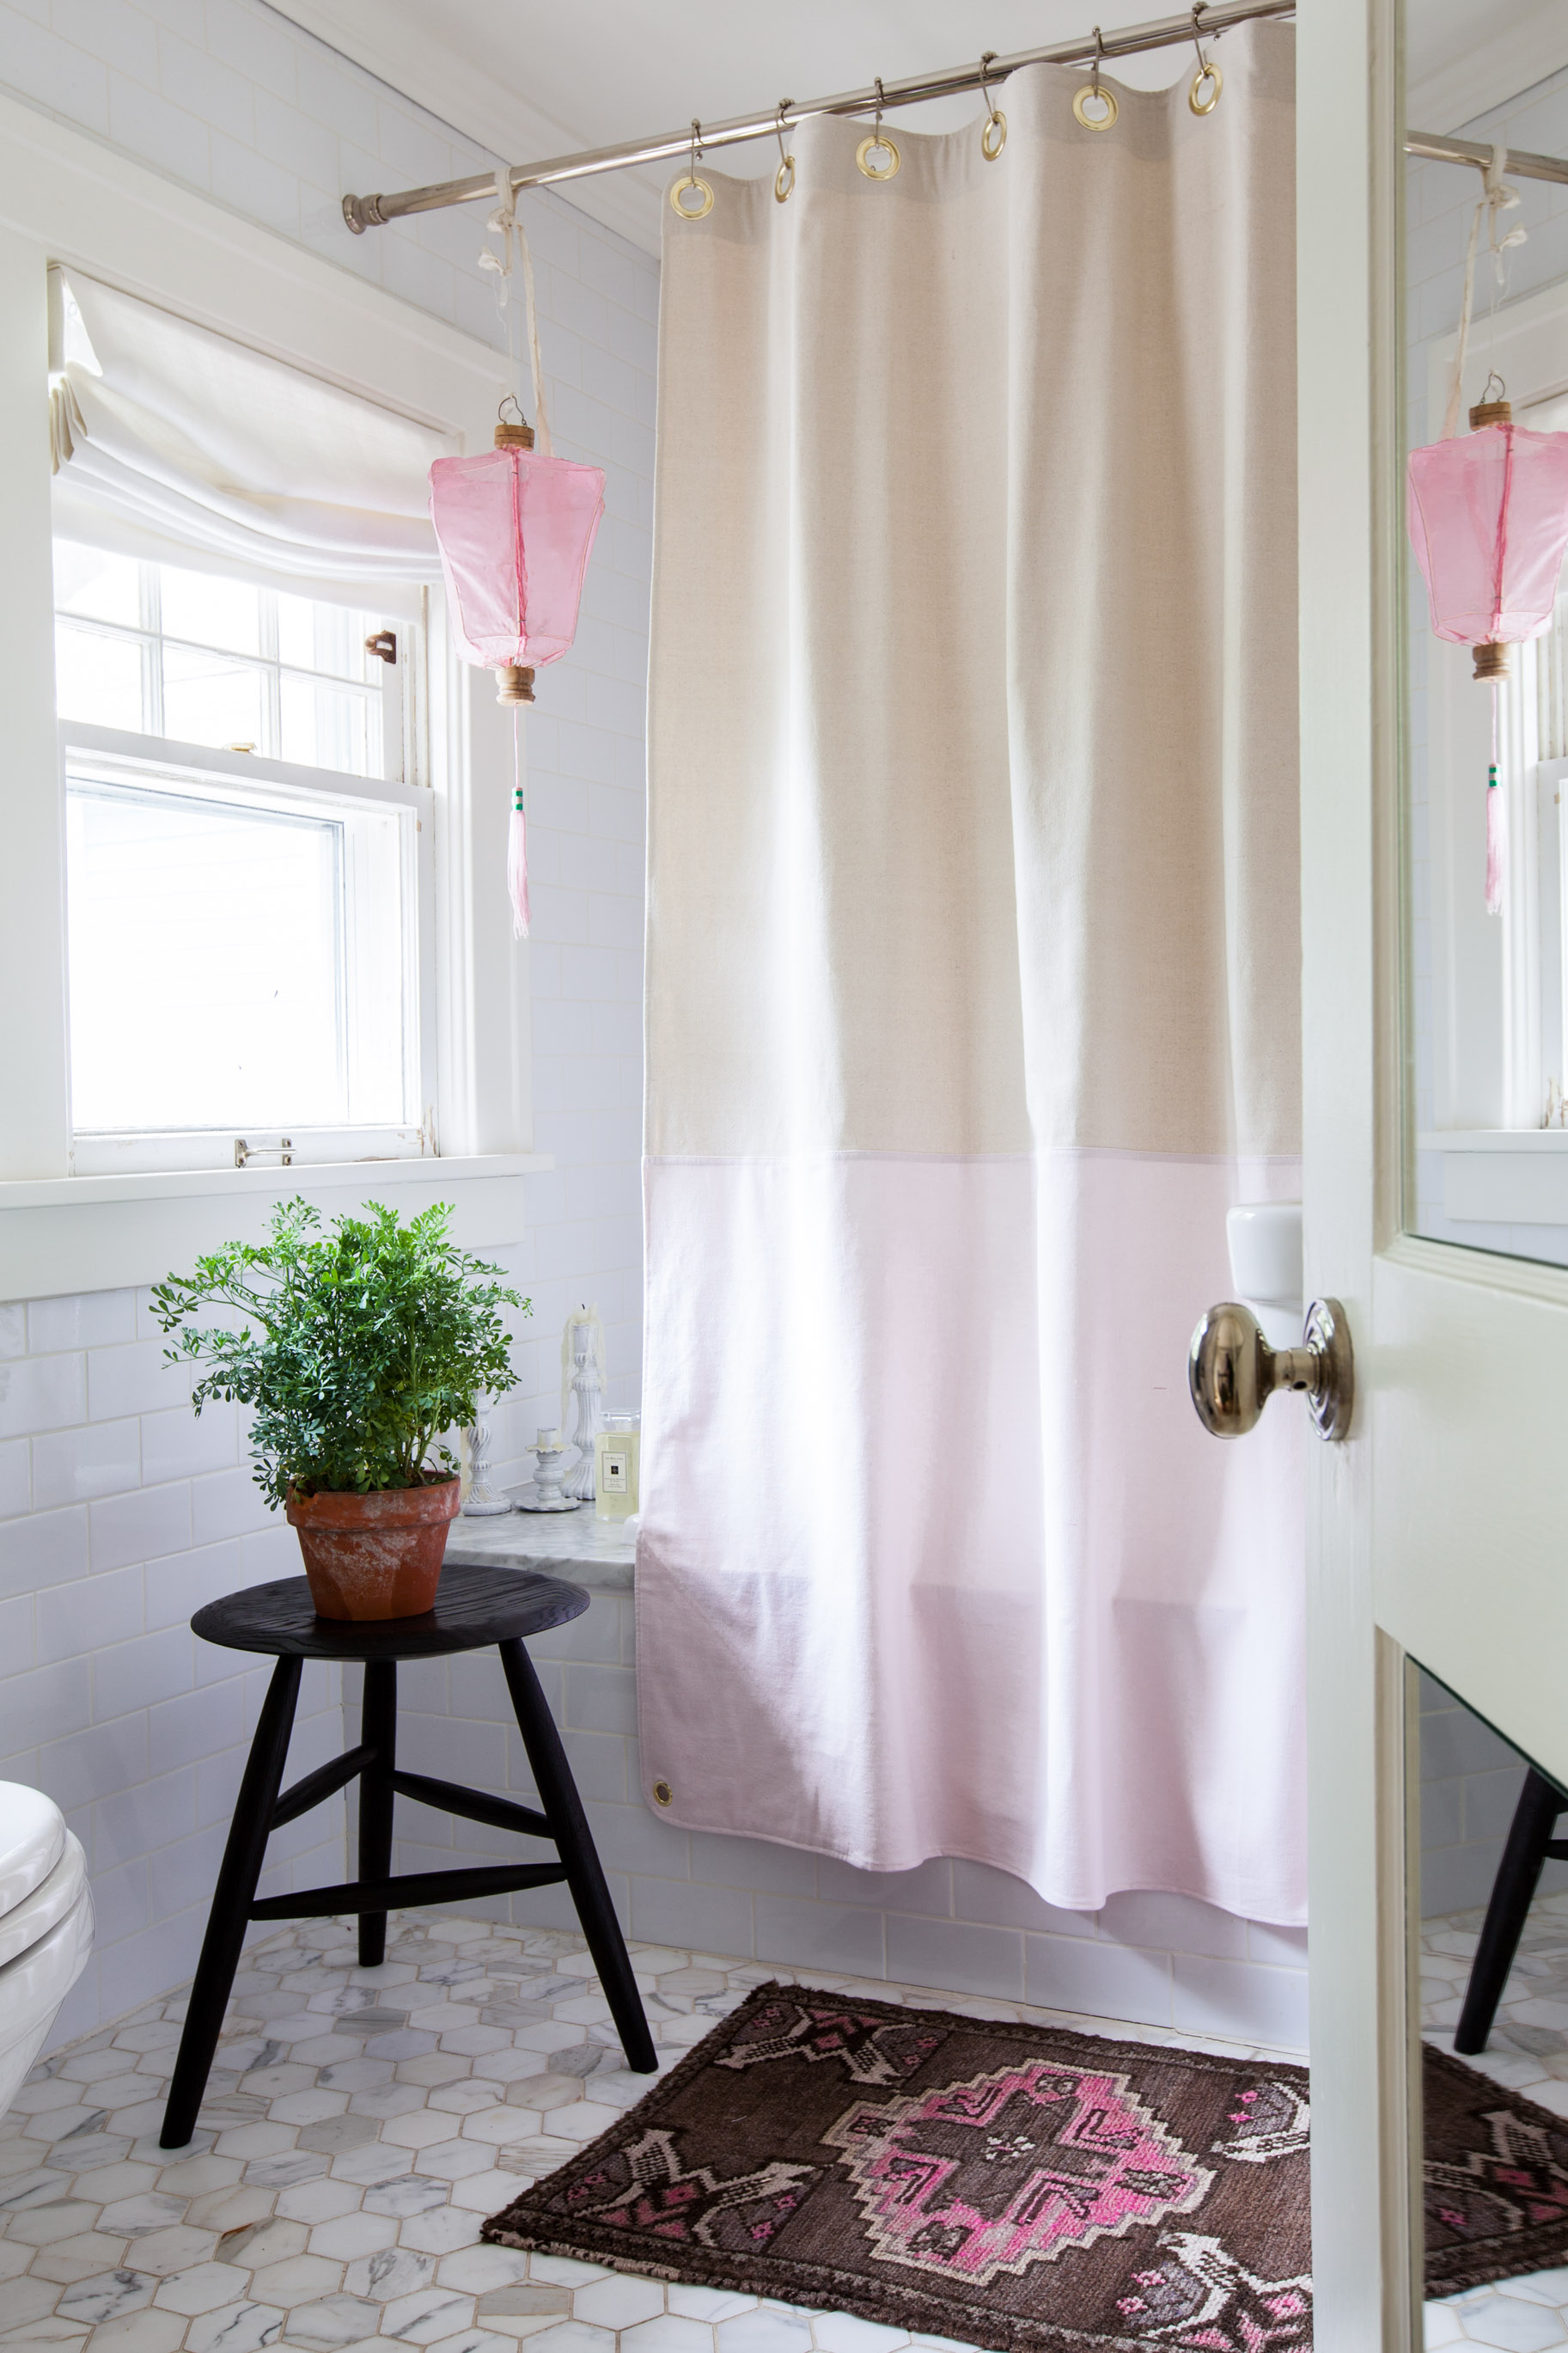 """Heated floors and tons of natural light make Michelle's master bath one of her favorite rooms in her house. Above the bath hangs a lantern that she purchased in college and has since moved with her to eleven apartments and one home. """"I can't seem to part with it. It's such a cheerful piece!"""" says Adams.Photo by  Marta Xochilt Perez"""